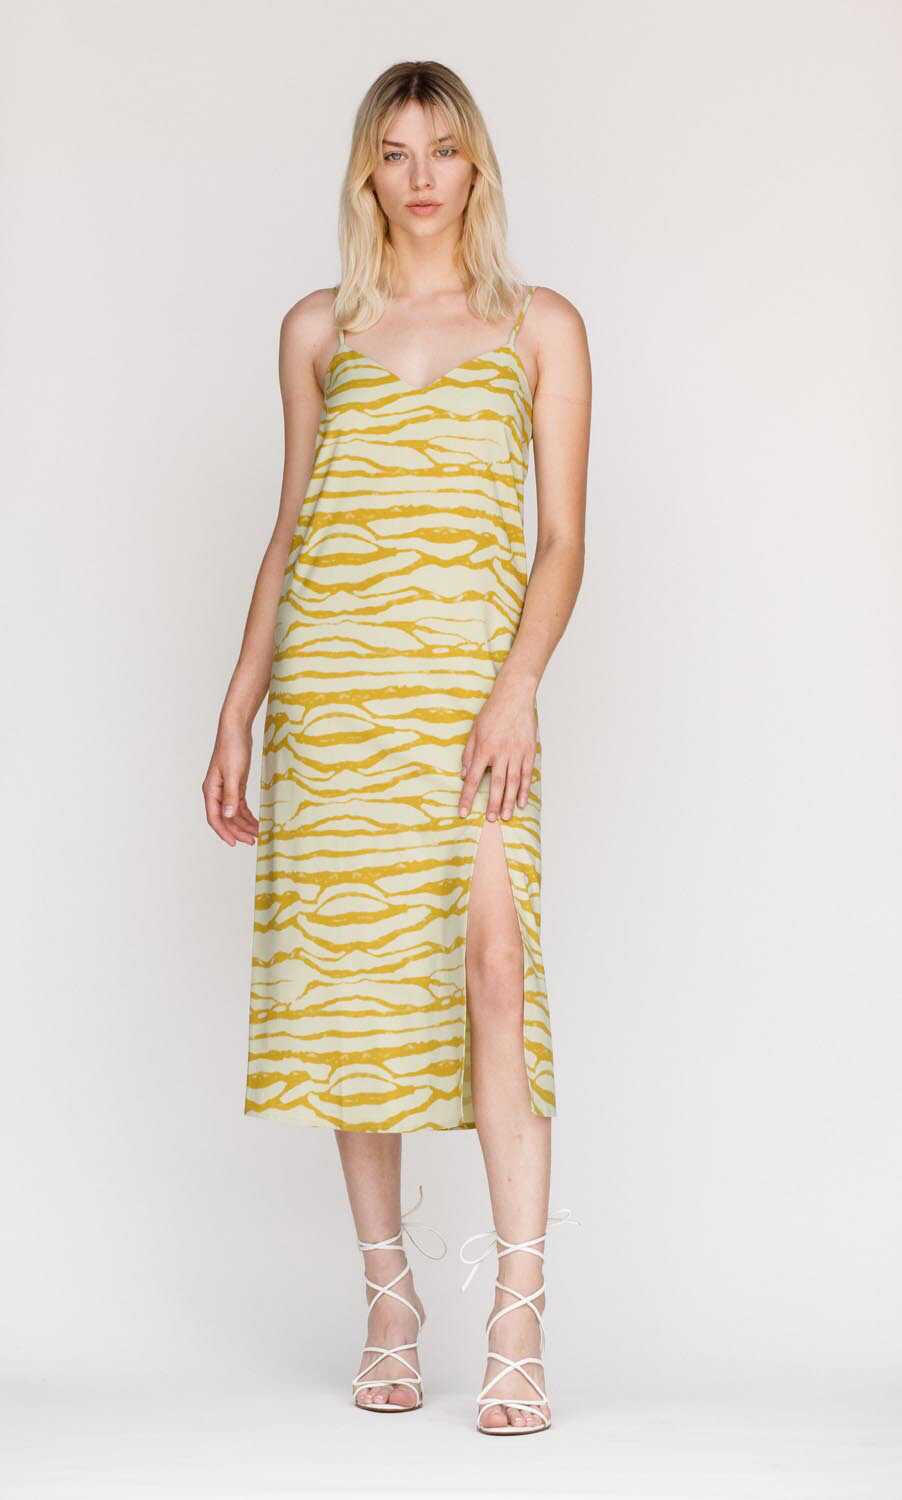 Dress - Pistachio Slip w/ Slit